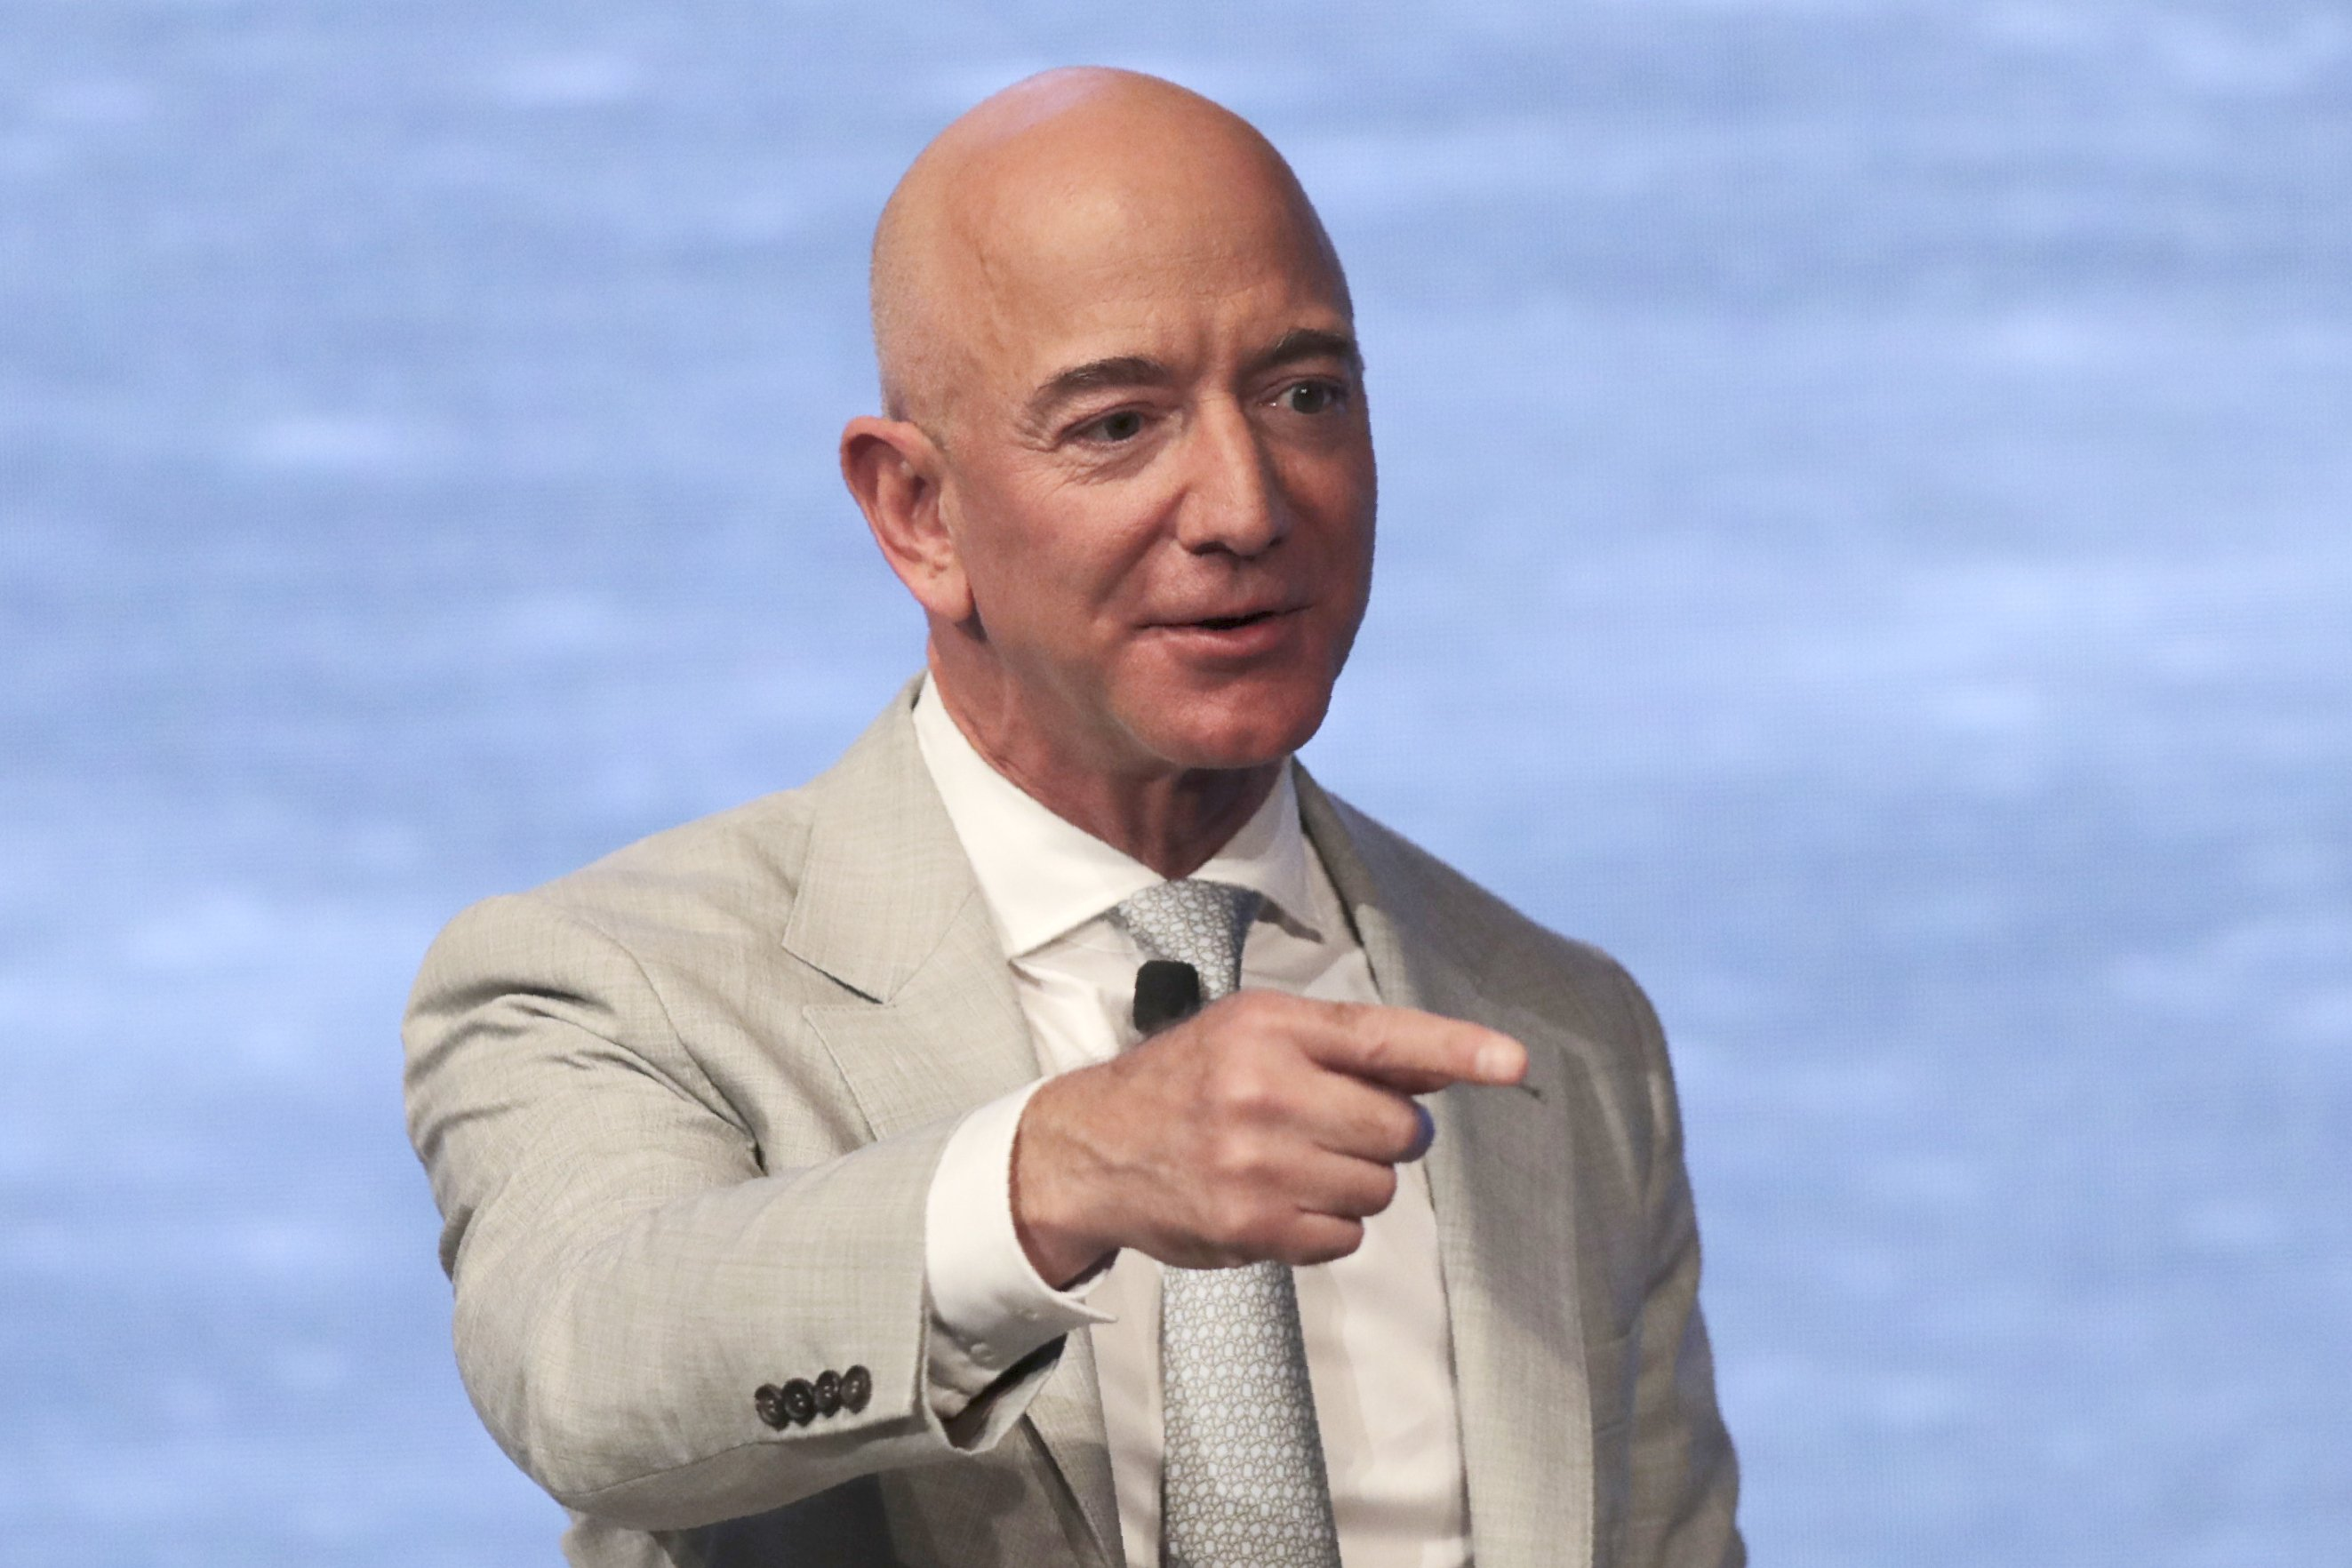 Bezos and Bloomberg among top 50 US charity donors for 2020